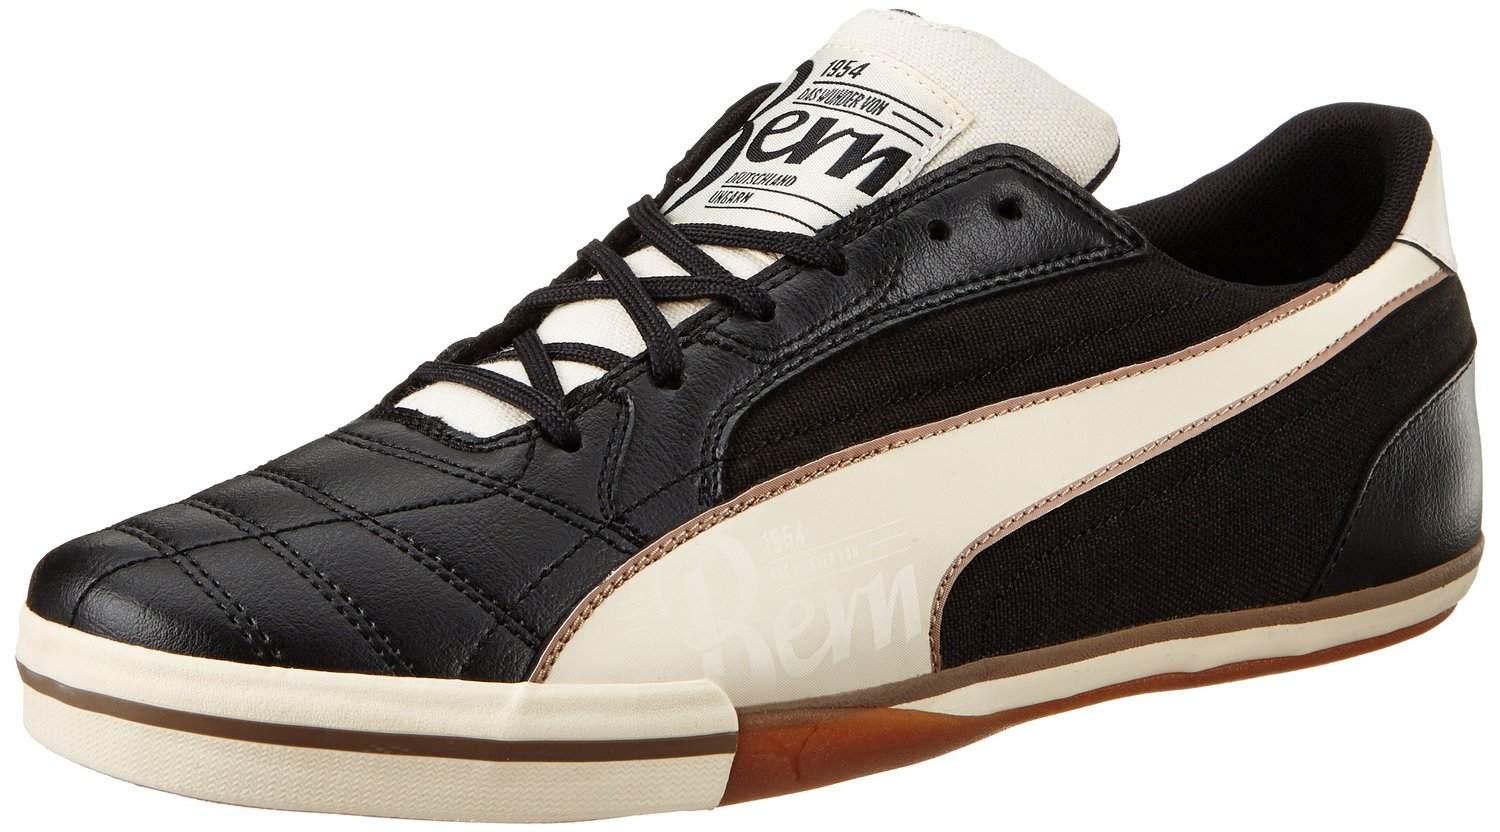 puma momentta vulcanized sala country indoor soccer boots